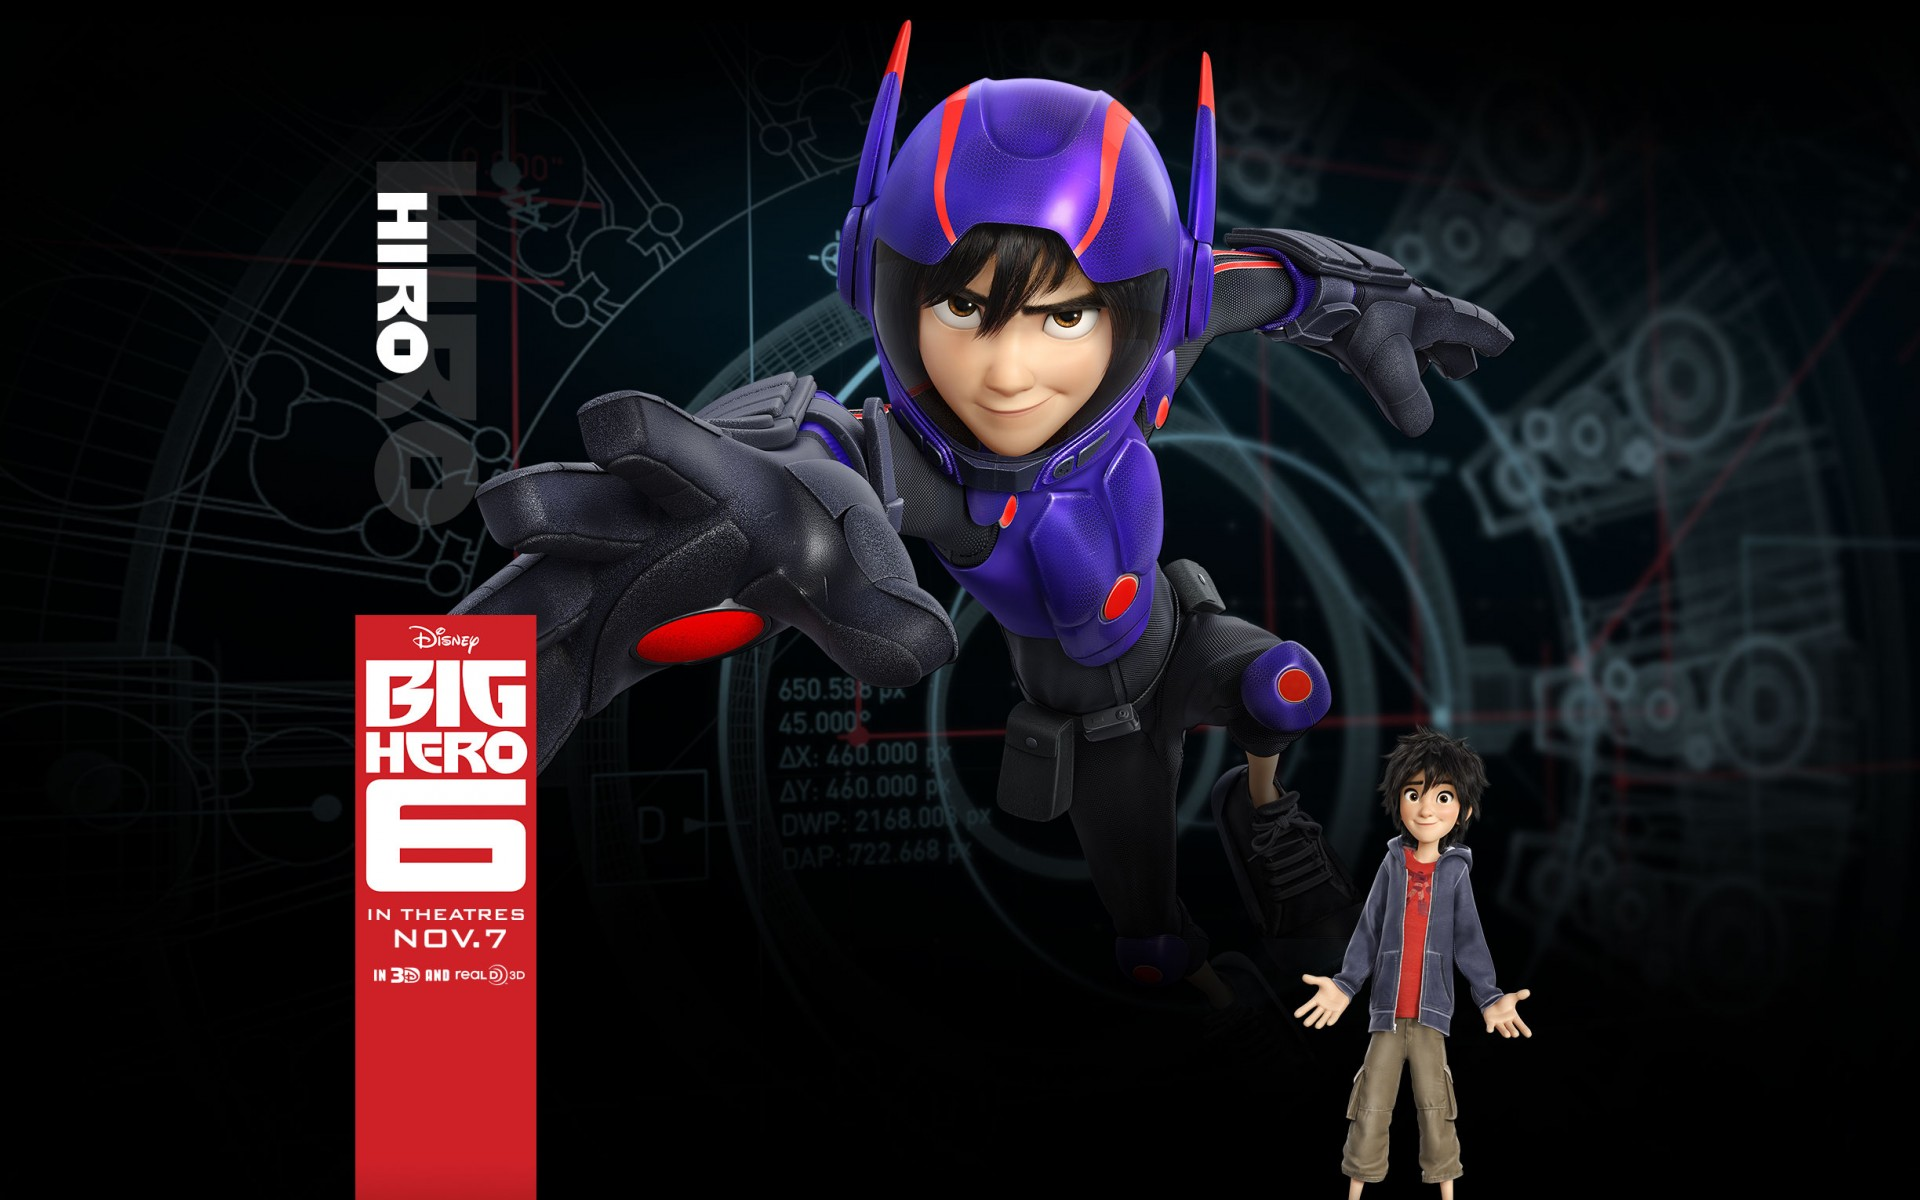 big hero 6 android wallpaper: Big Hero 6 Wallpapers, Pictures, Images